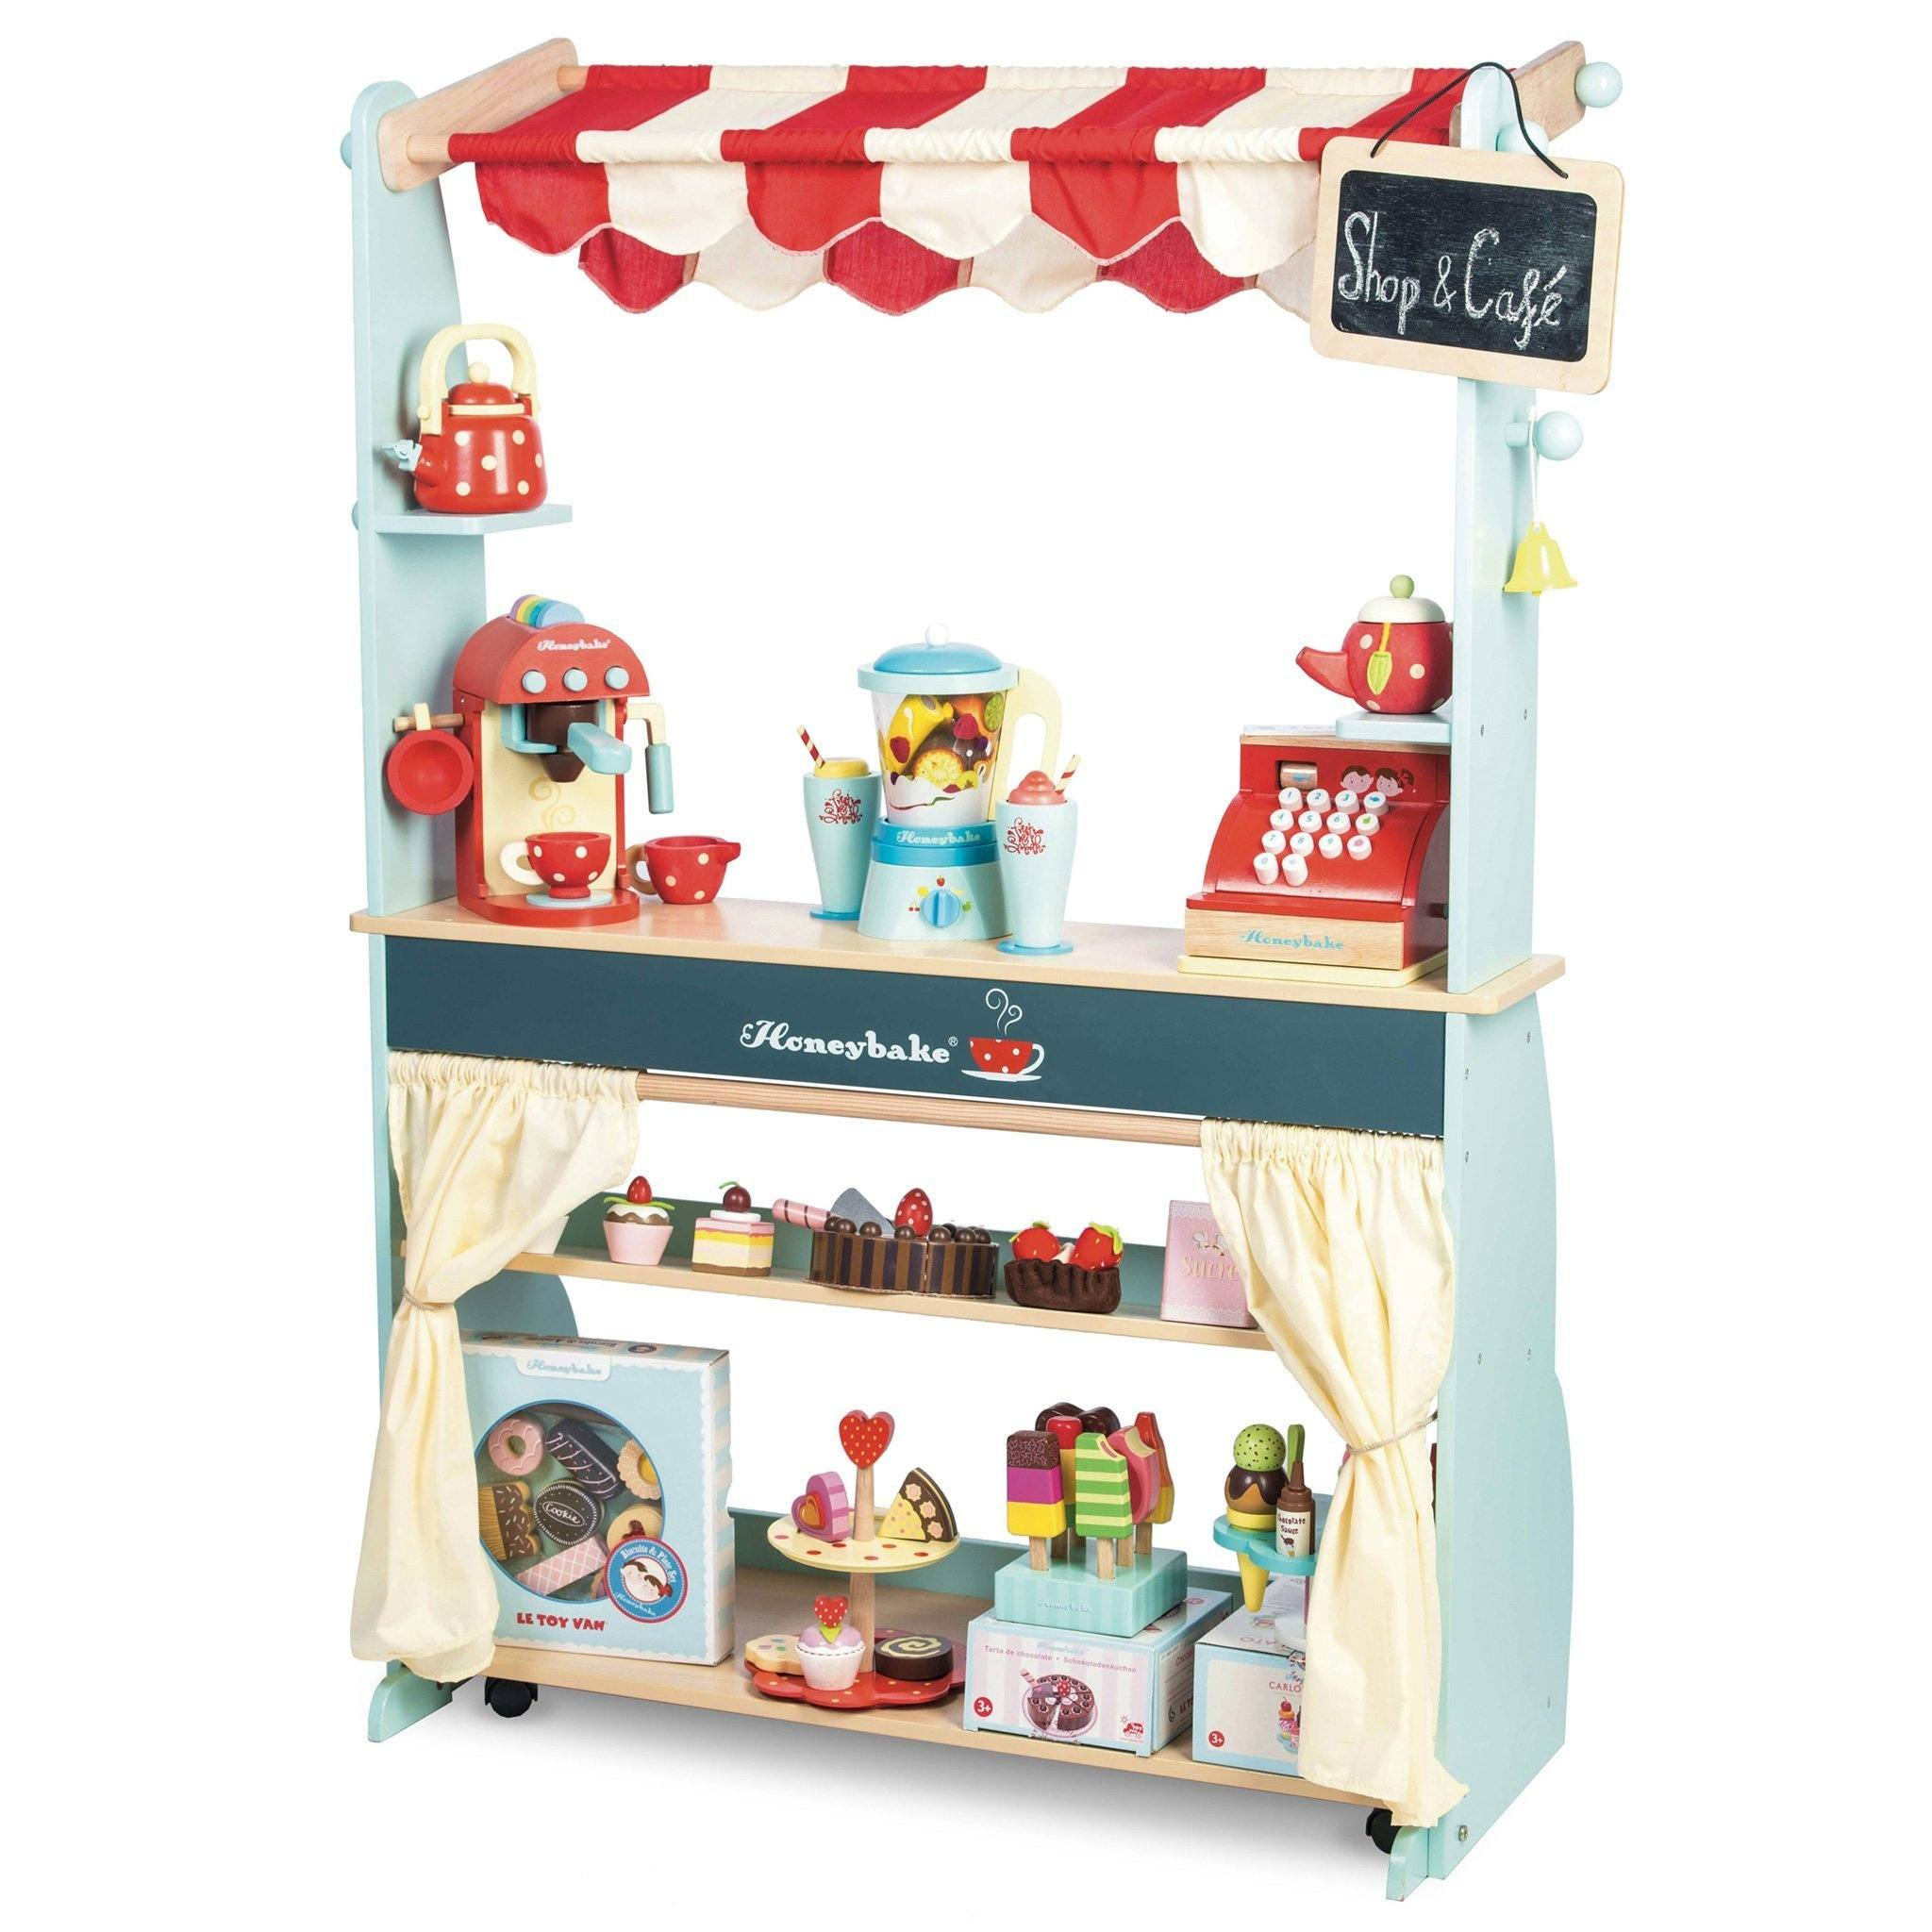 Le Toy Van Shop & Cafe - TOYBOX Toy Shop